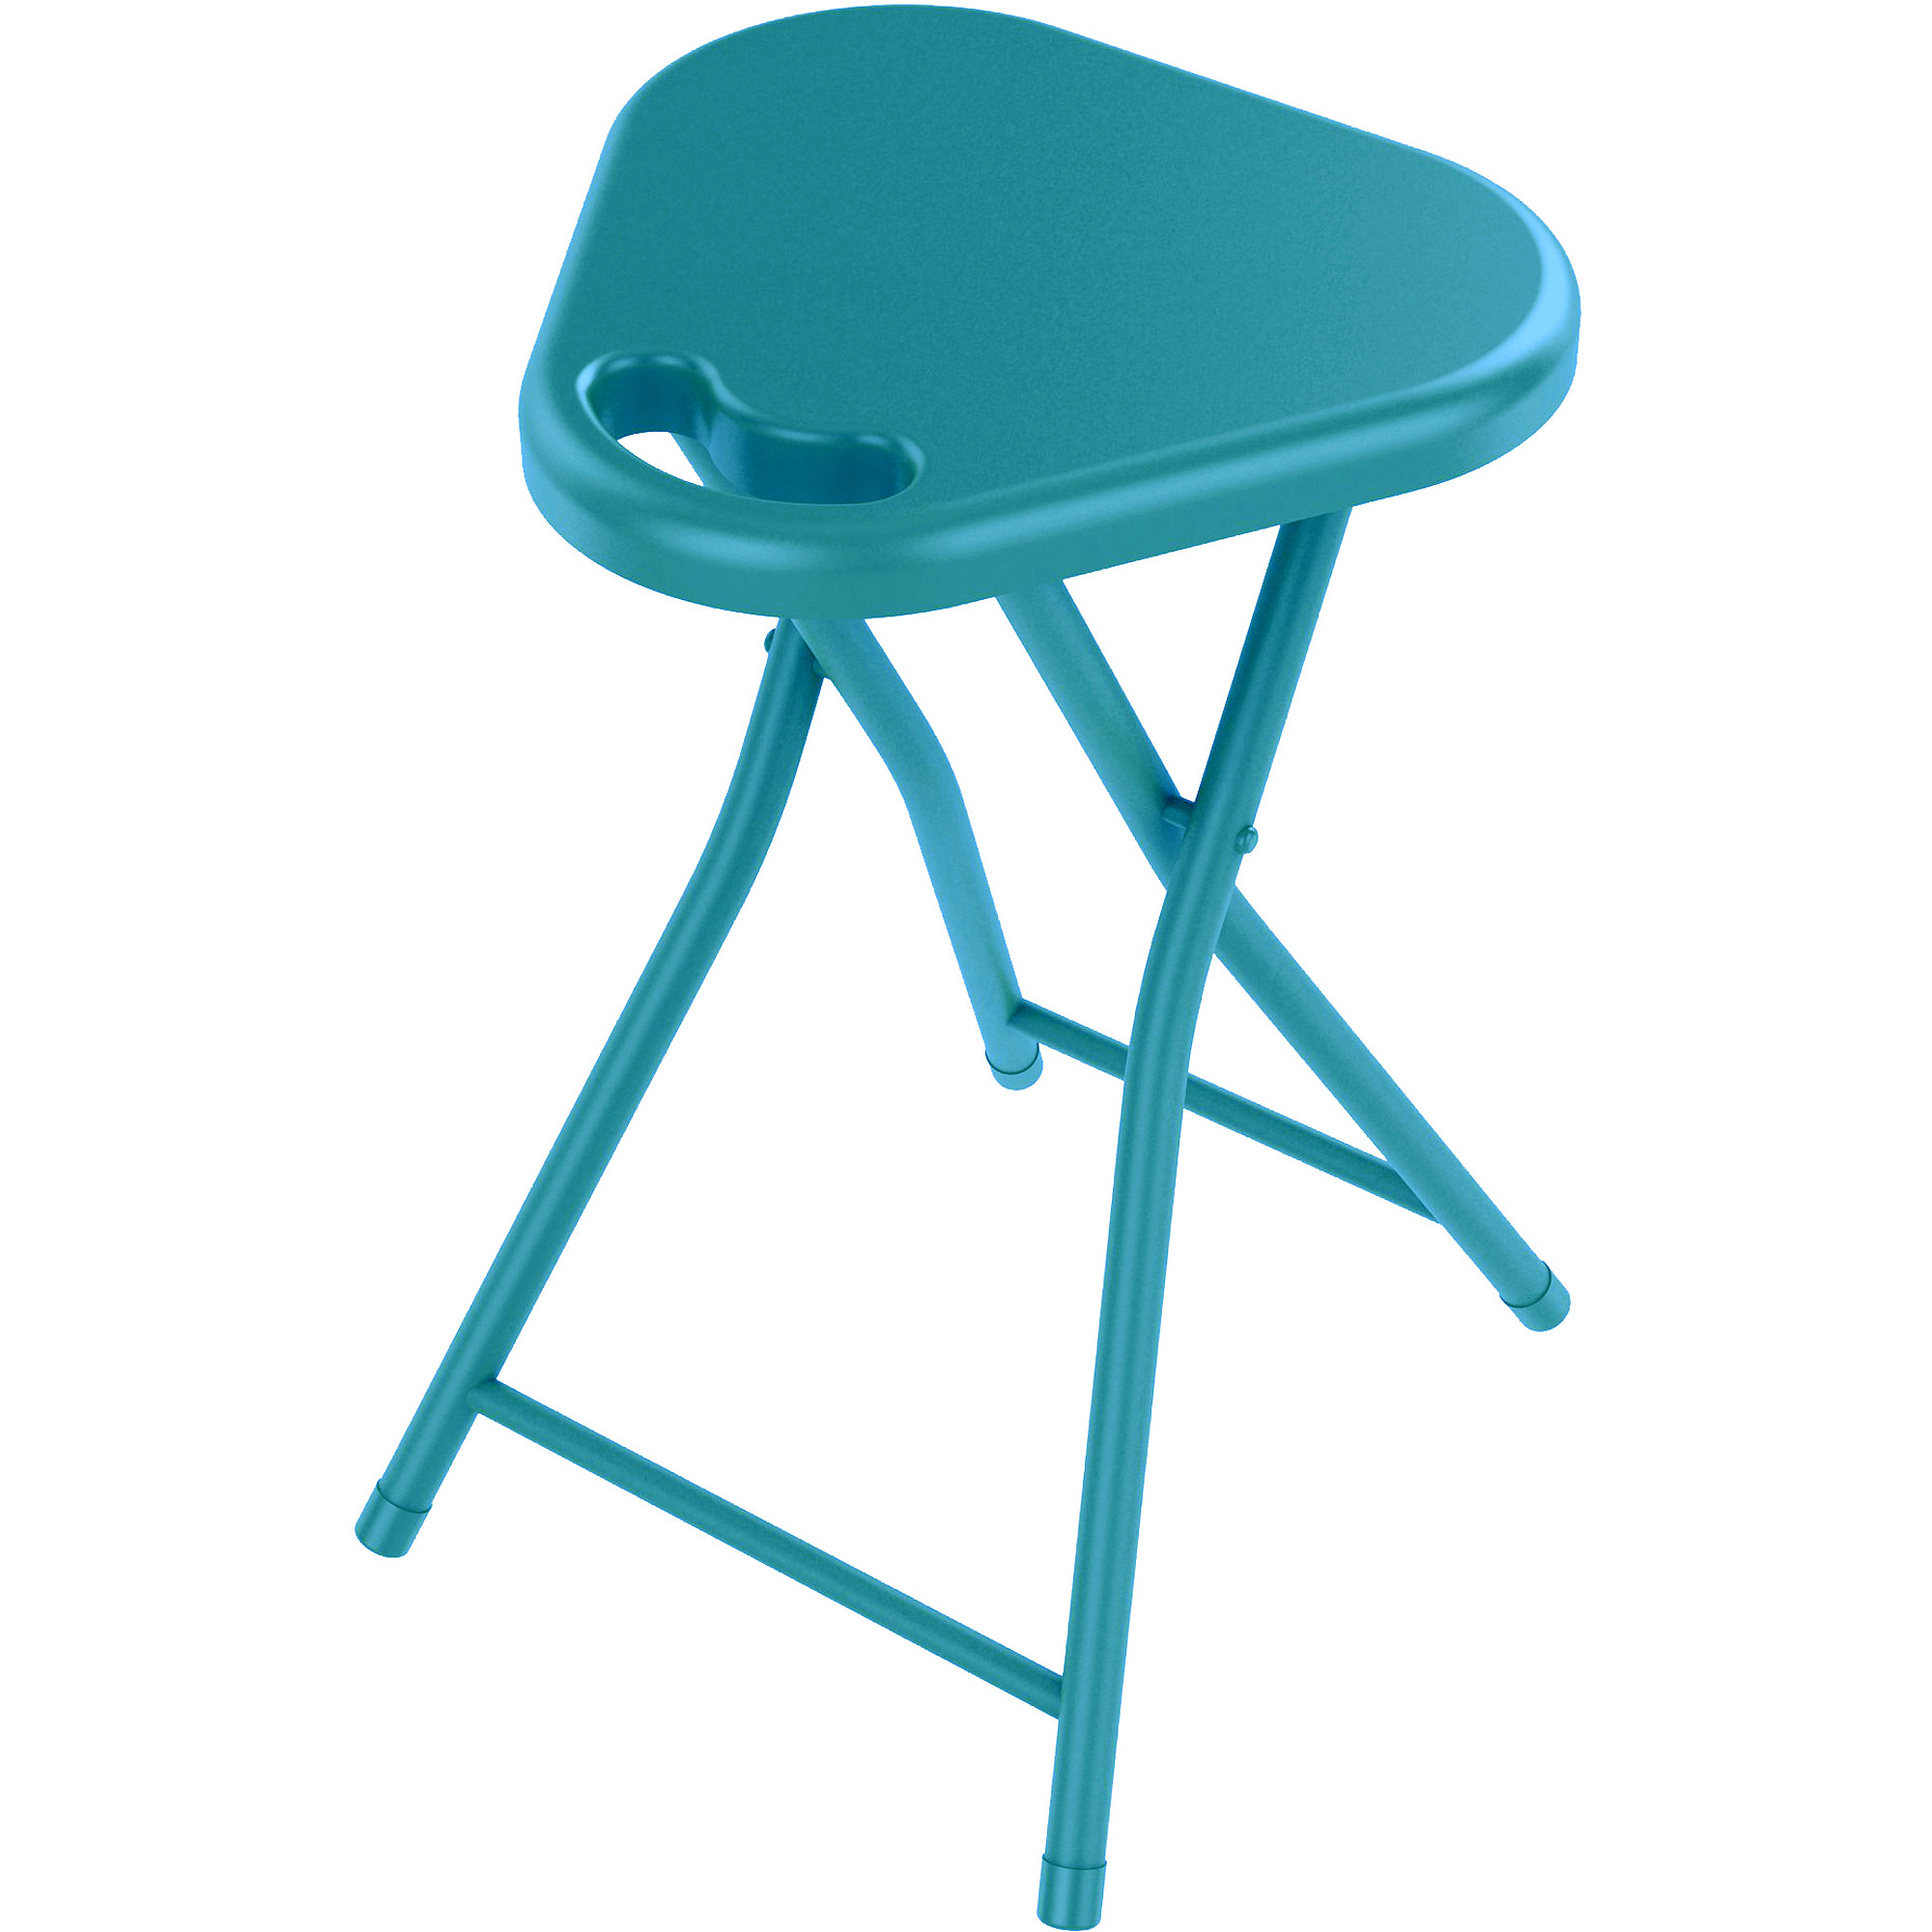 Atlantic Folding Stool with Handle, Set of 4, Multiple Colors